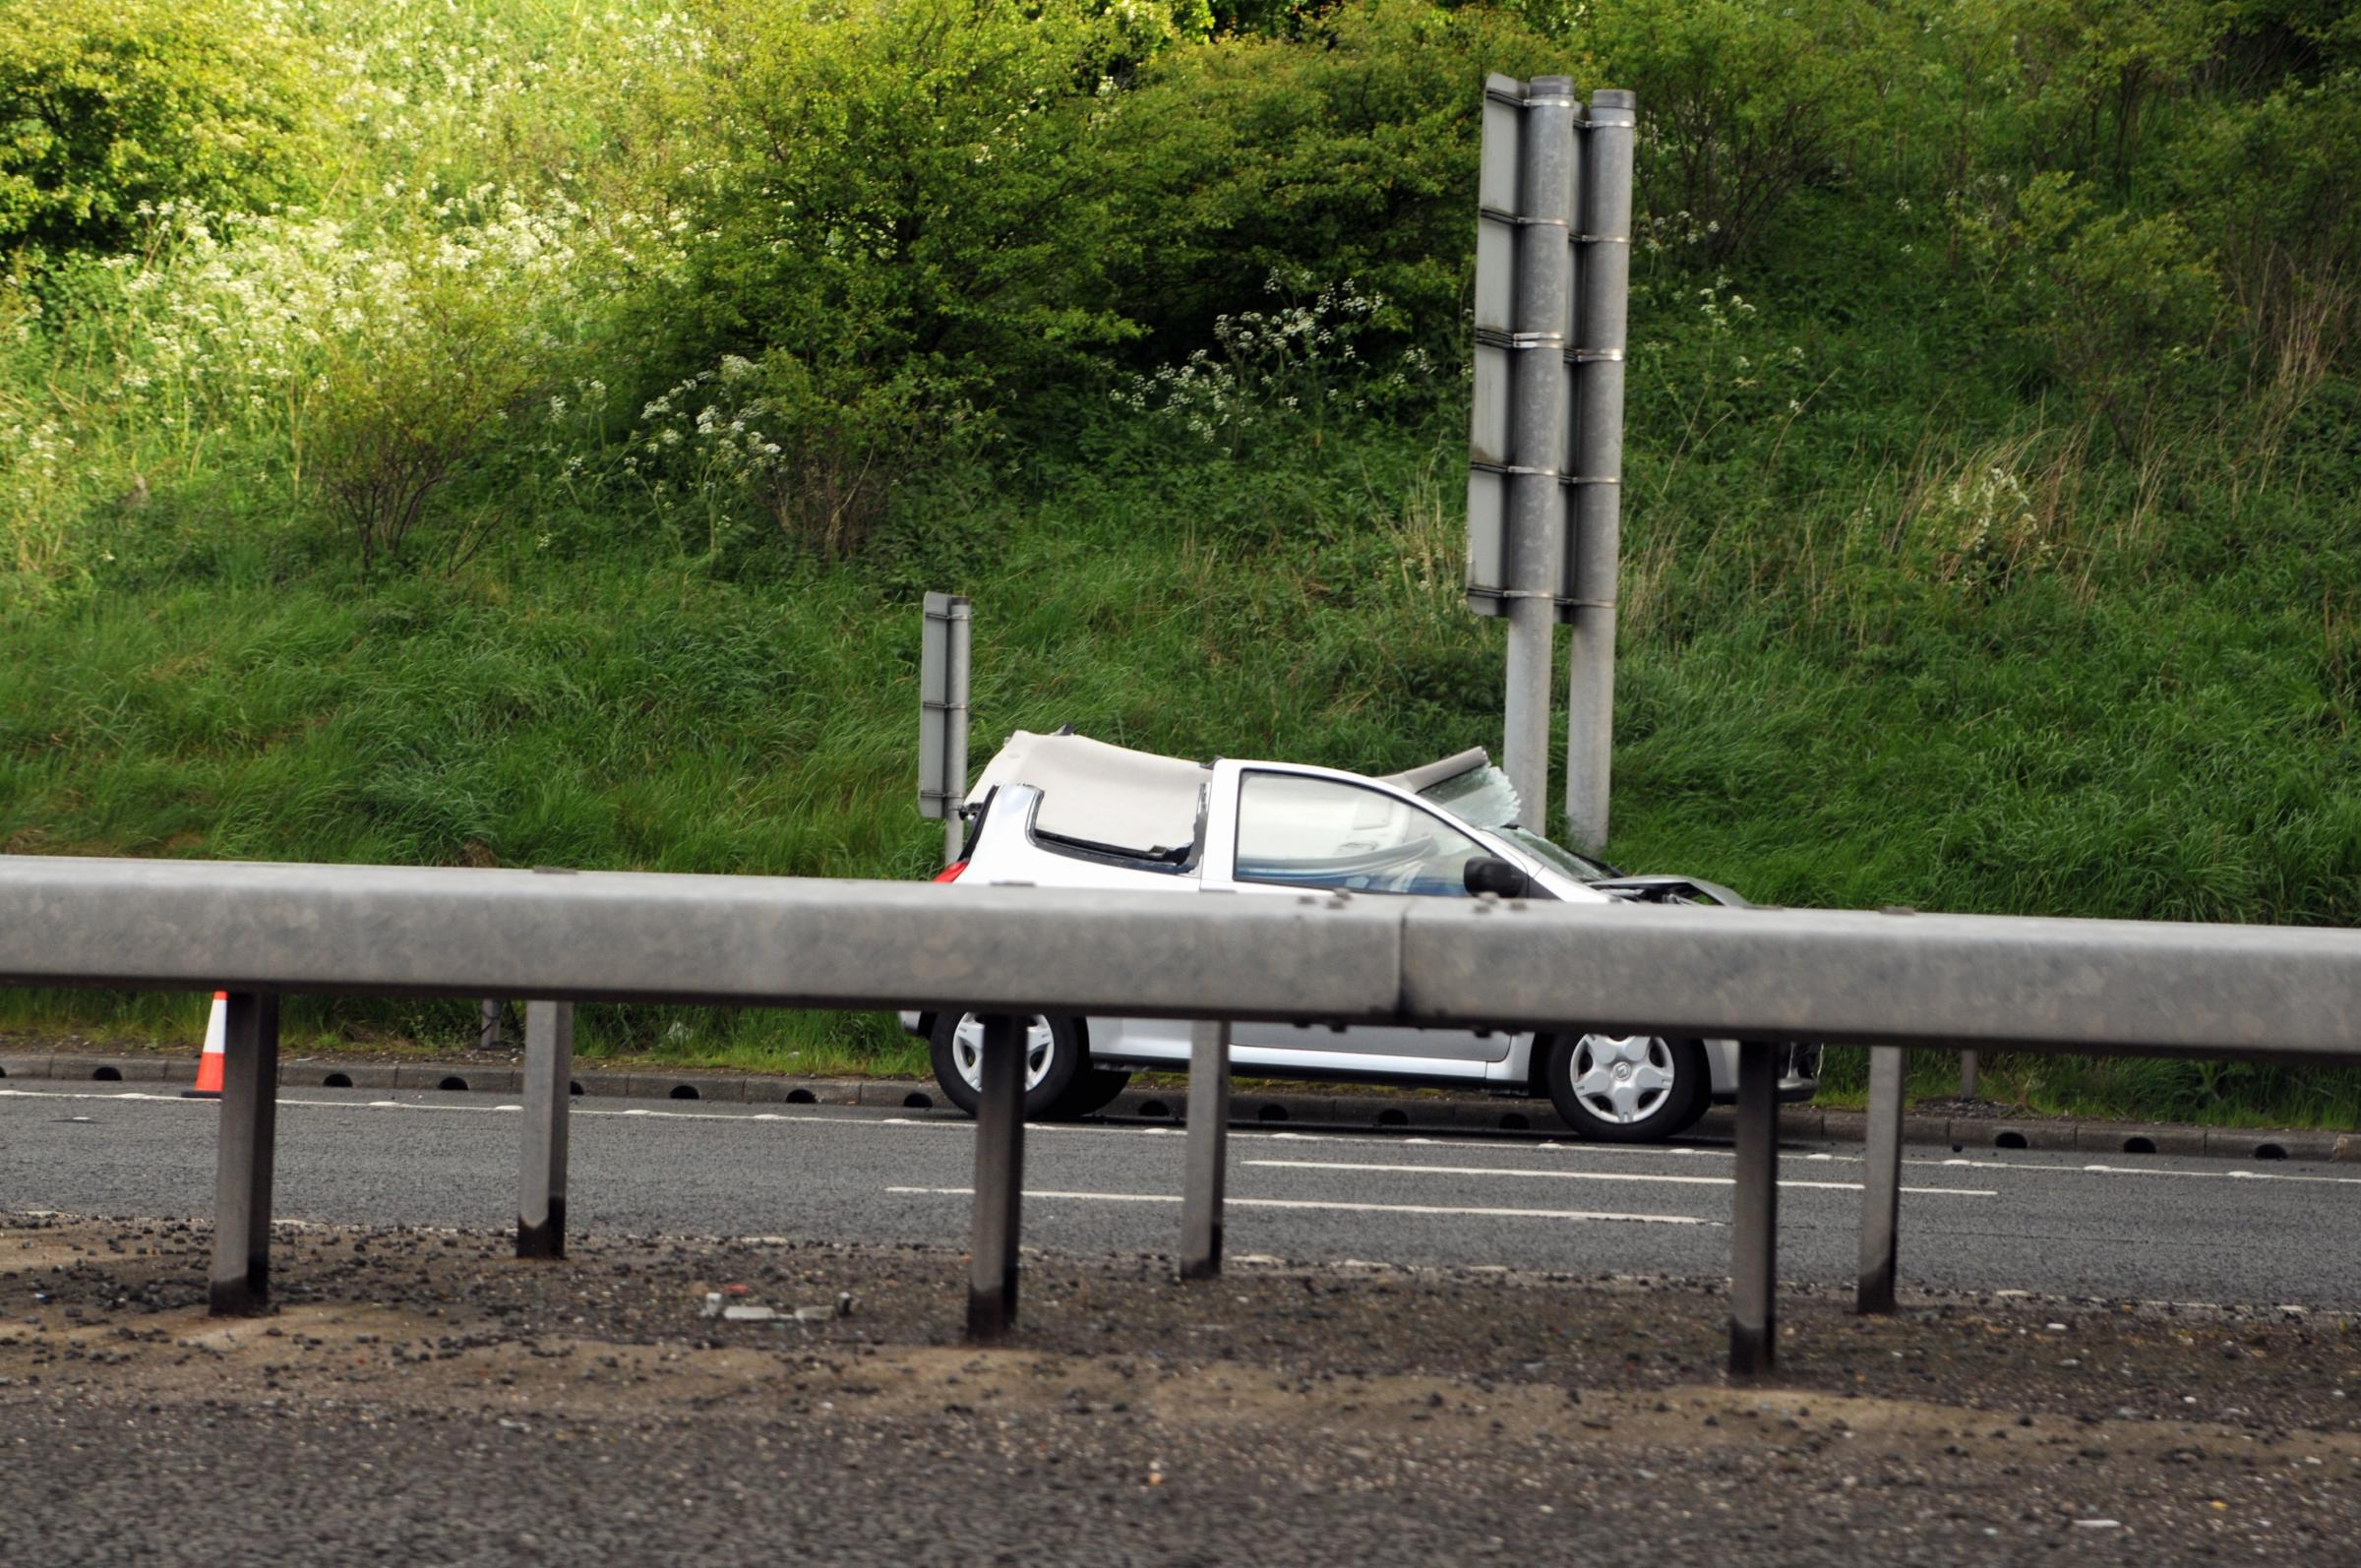 Two lanes closed on M65 after three car smash